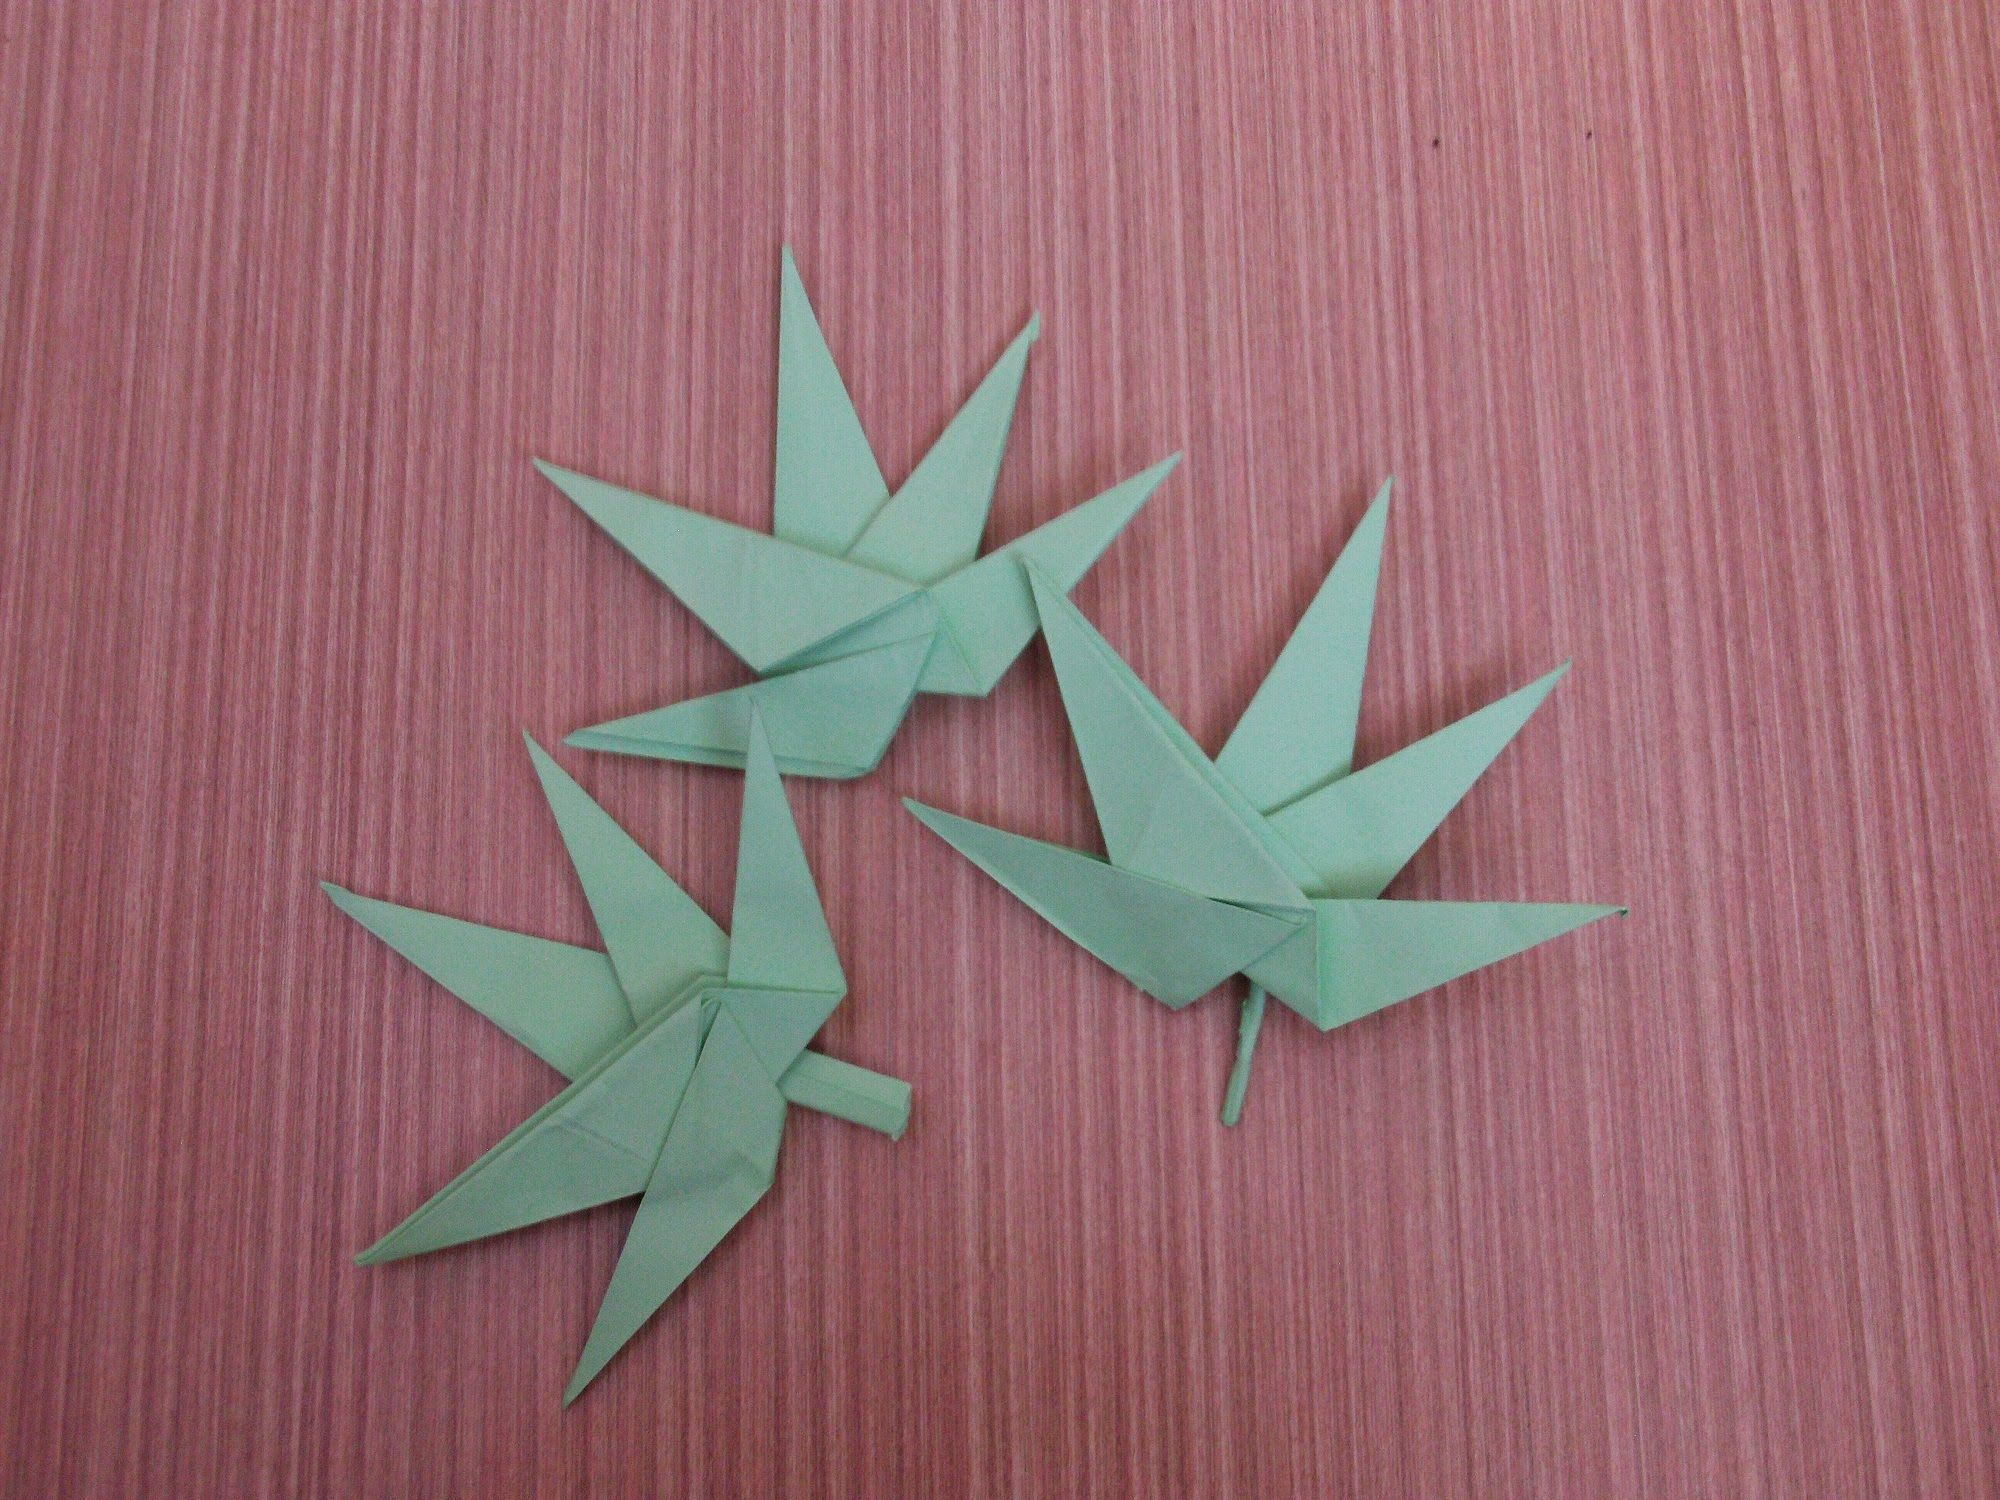 How to make a paper marijuana origami cannabis flower origami this is a cannabis flowers origami flower making a simple but need a little bit again i want to see like your cannabis flowers mightylinksfo Gallery